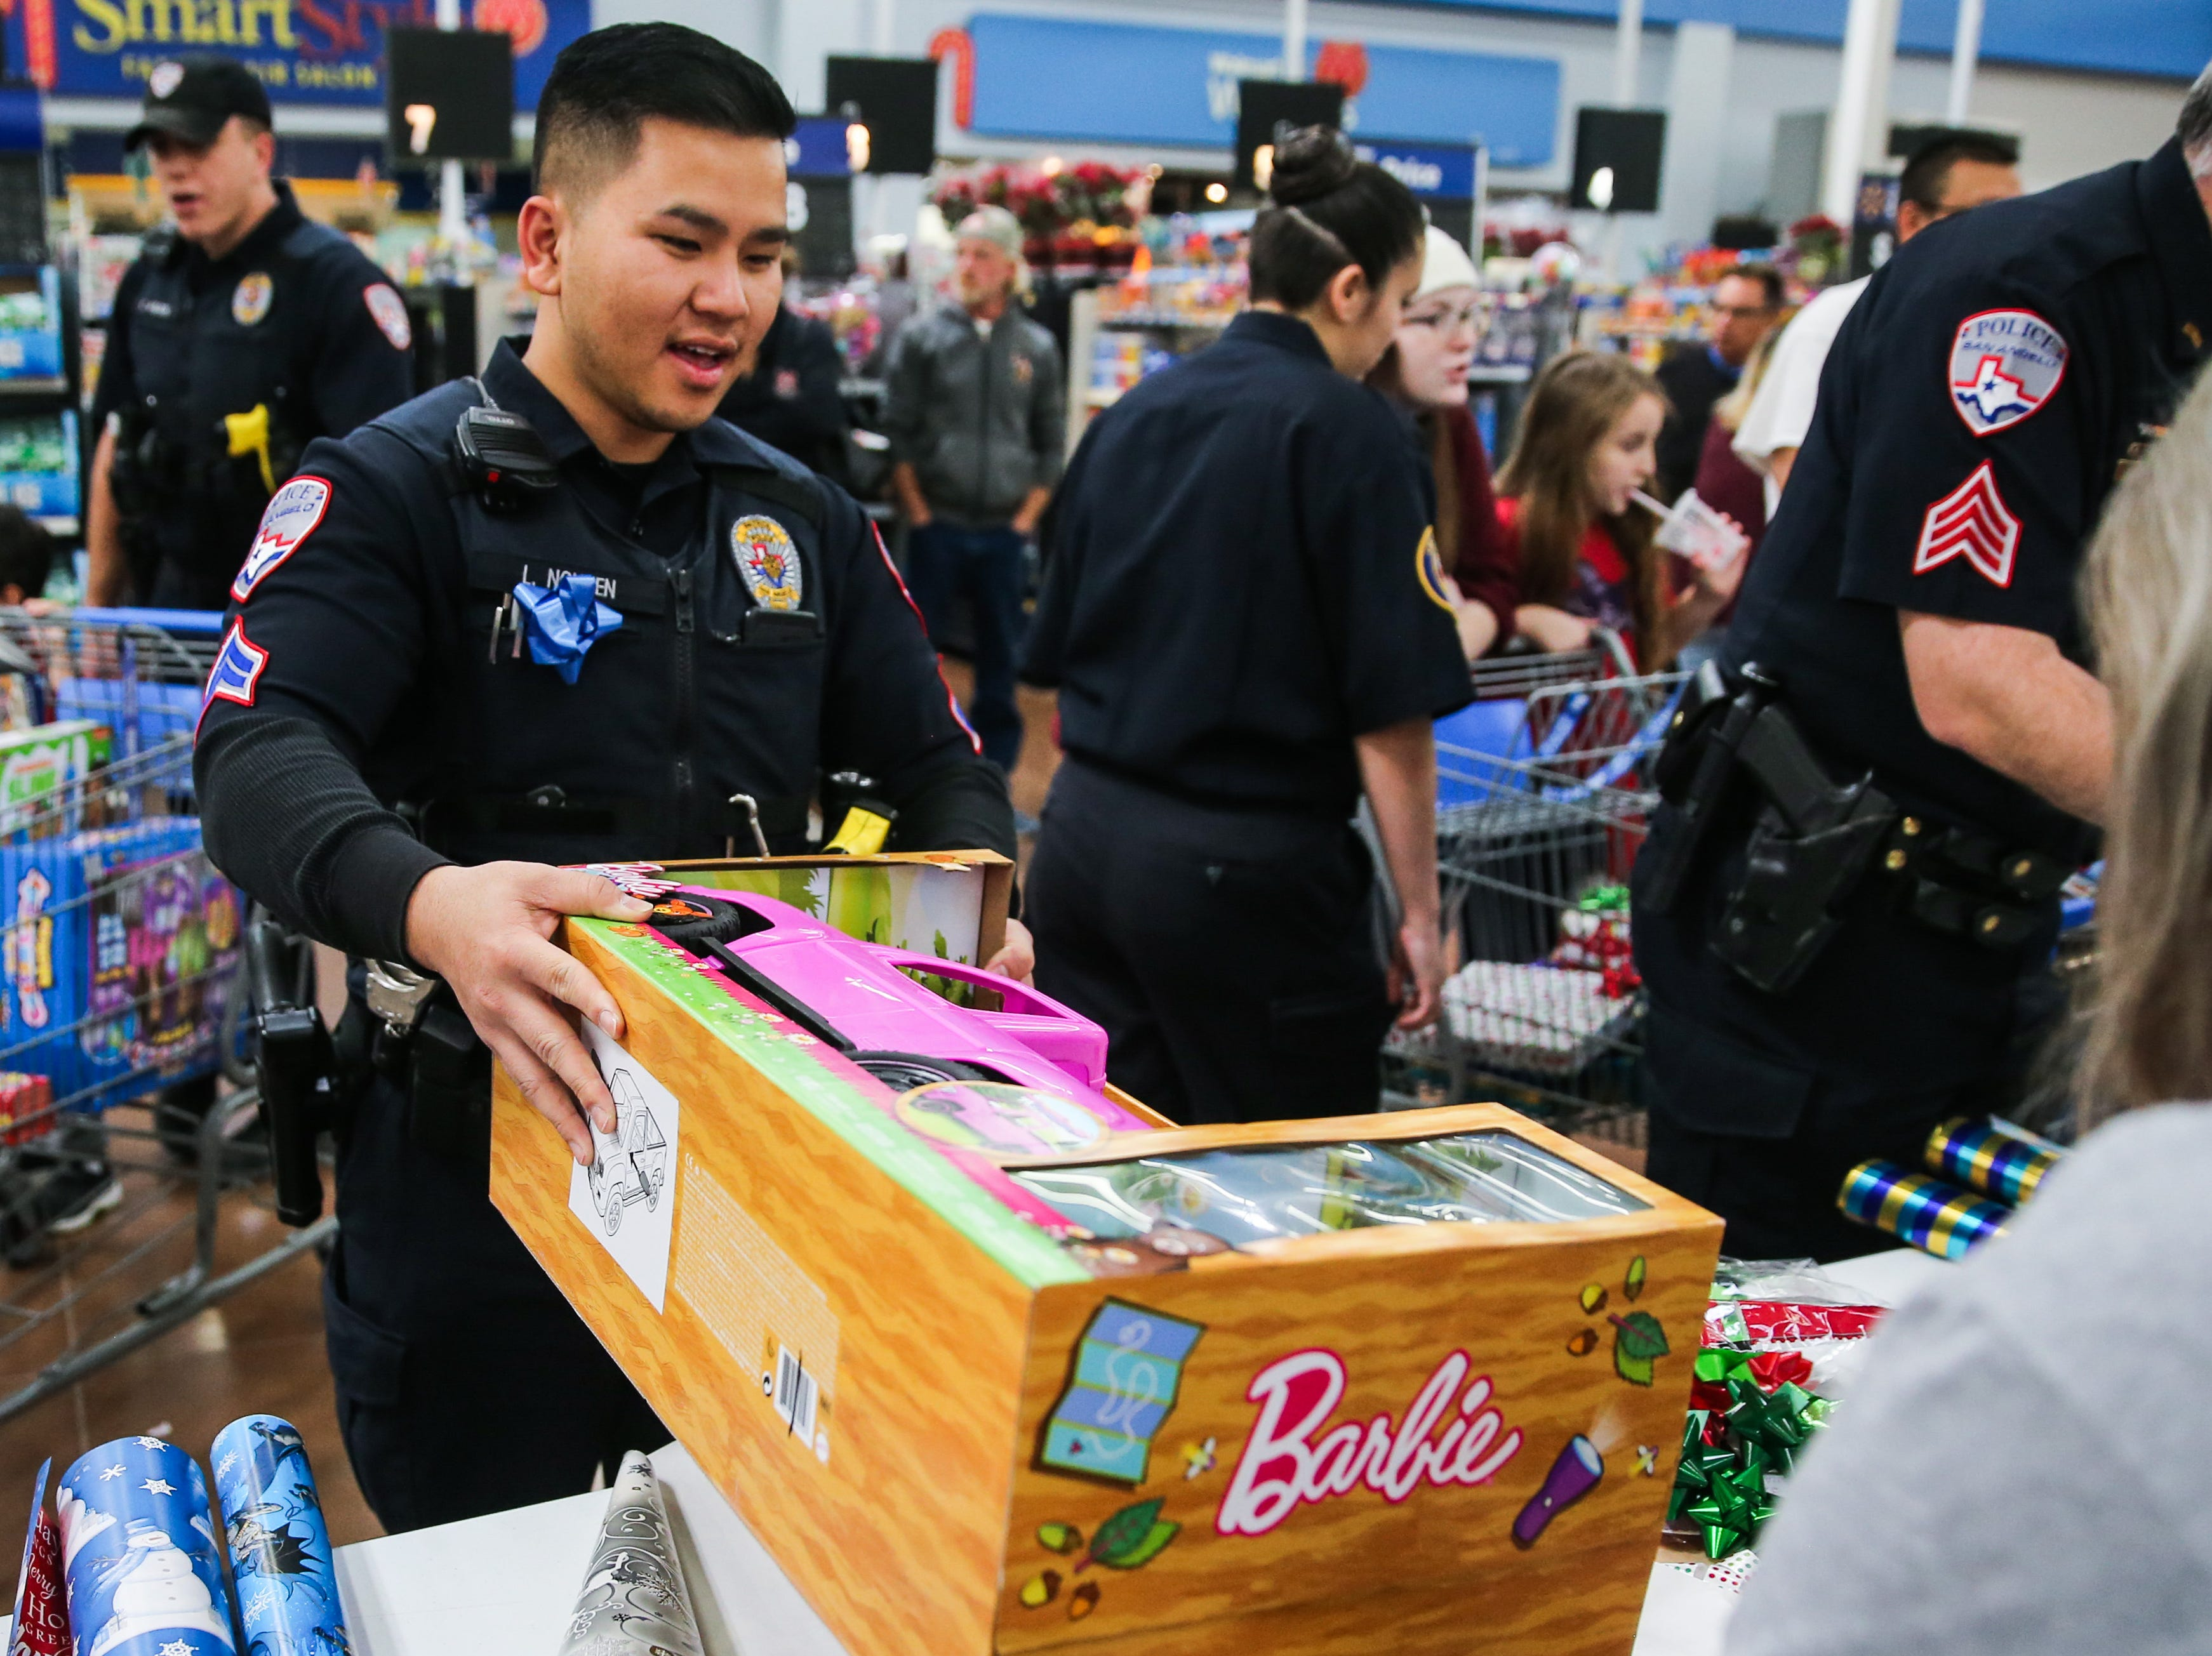 Officer Long Nguyen helps wrap a gift during Shop with a Cop event Saturday, Dec. 15, 2018, at Walmart.